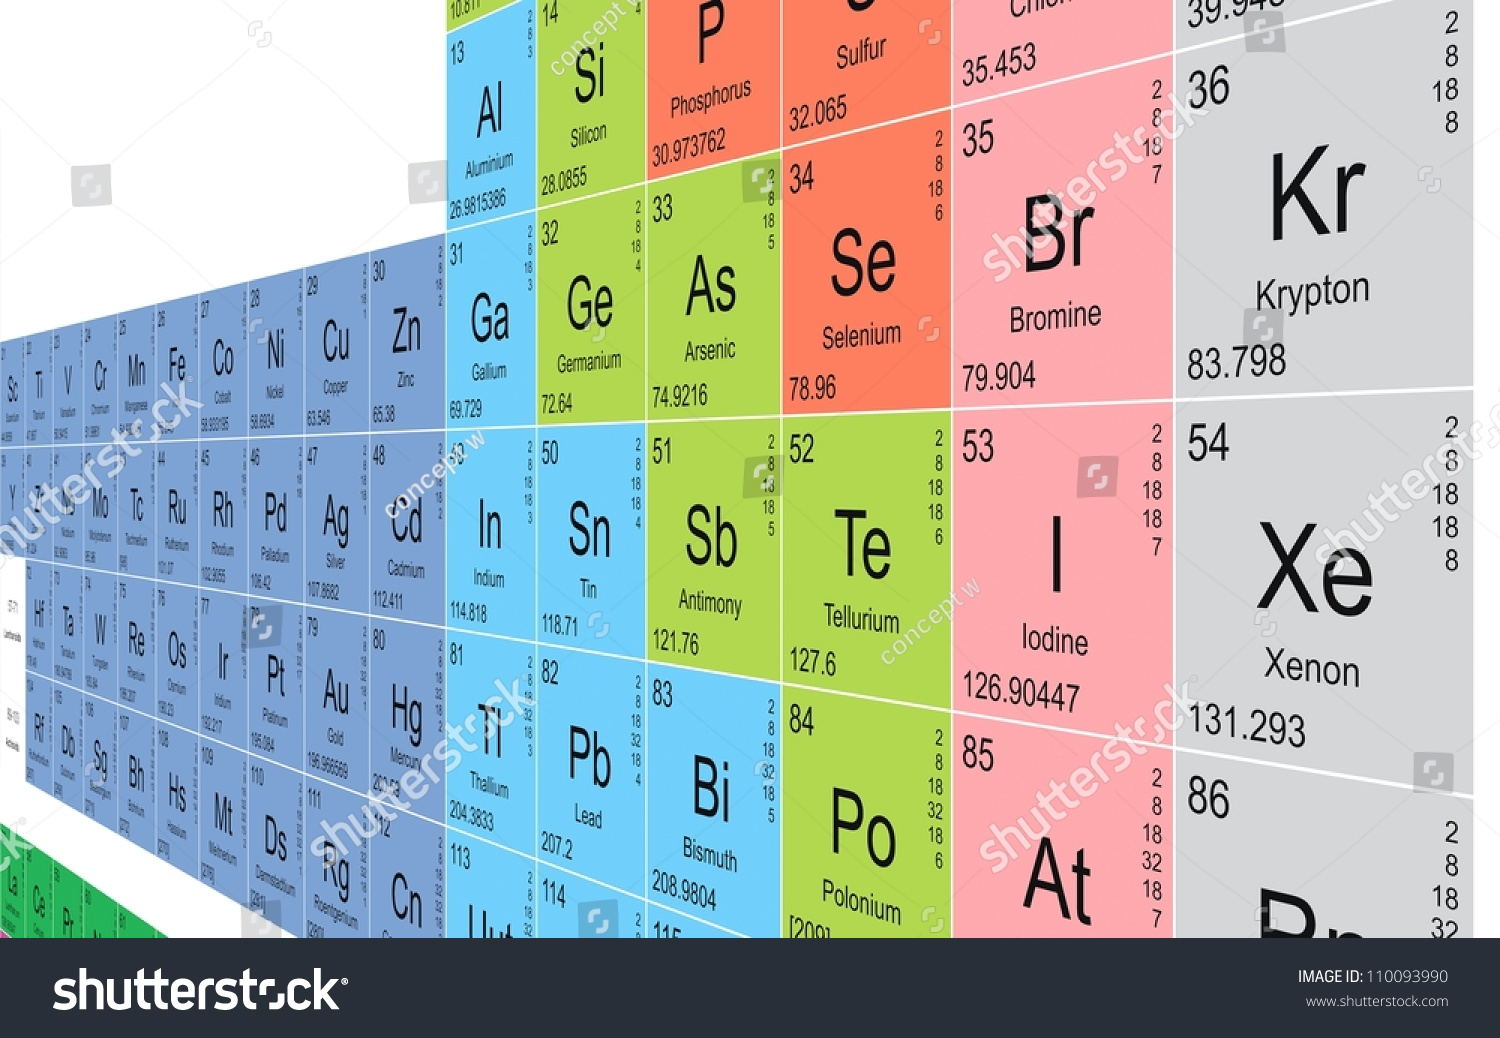 Periodic table background stock illustration 110093990 shutterstock periodic table background gamestrikefo Images